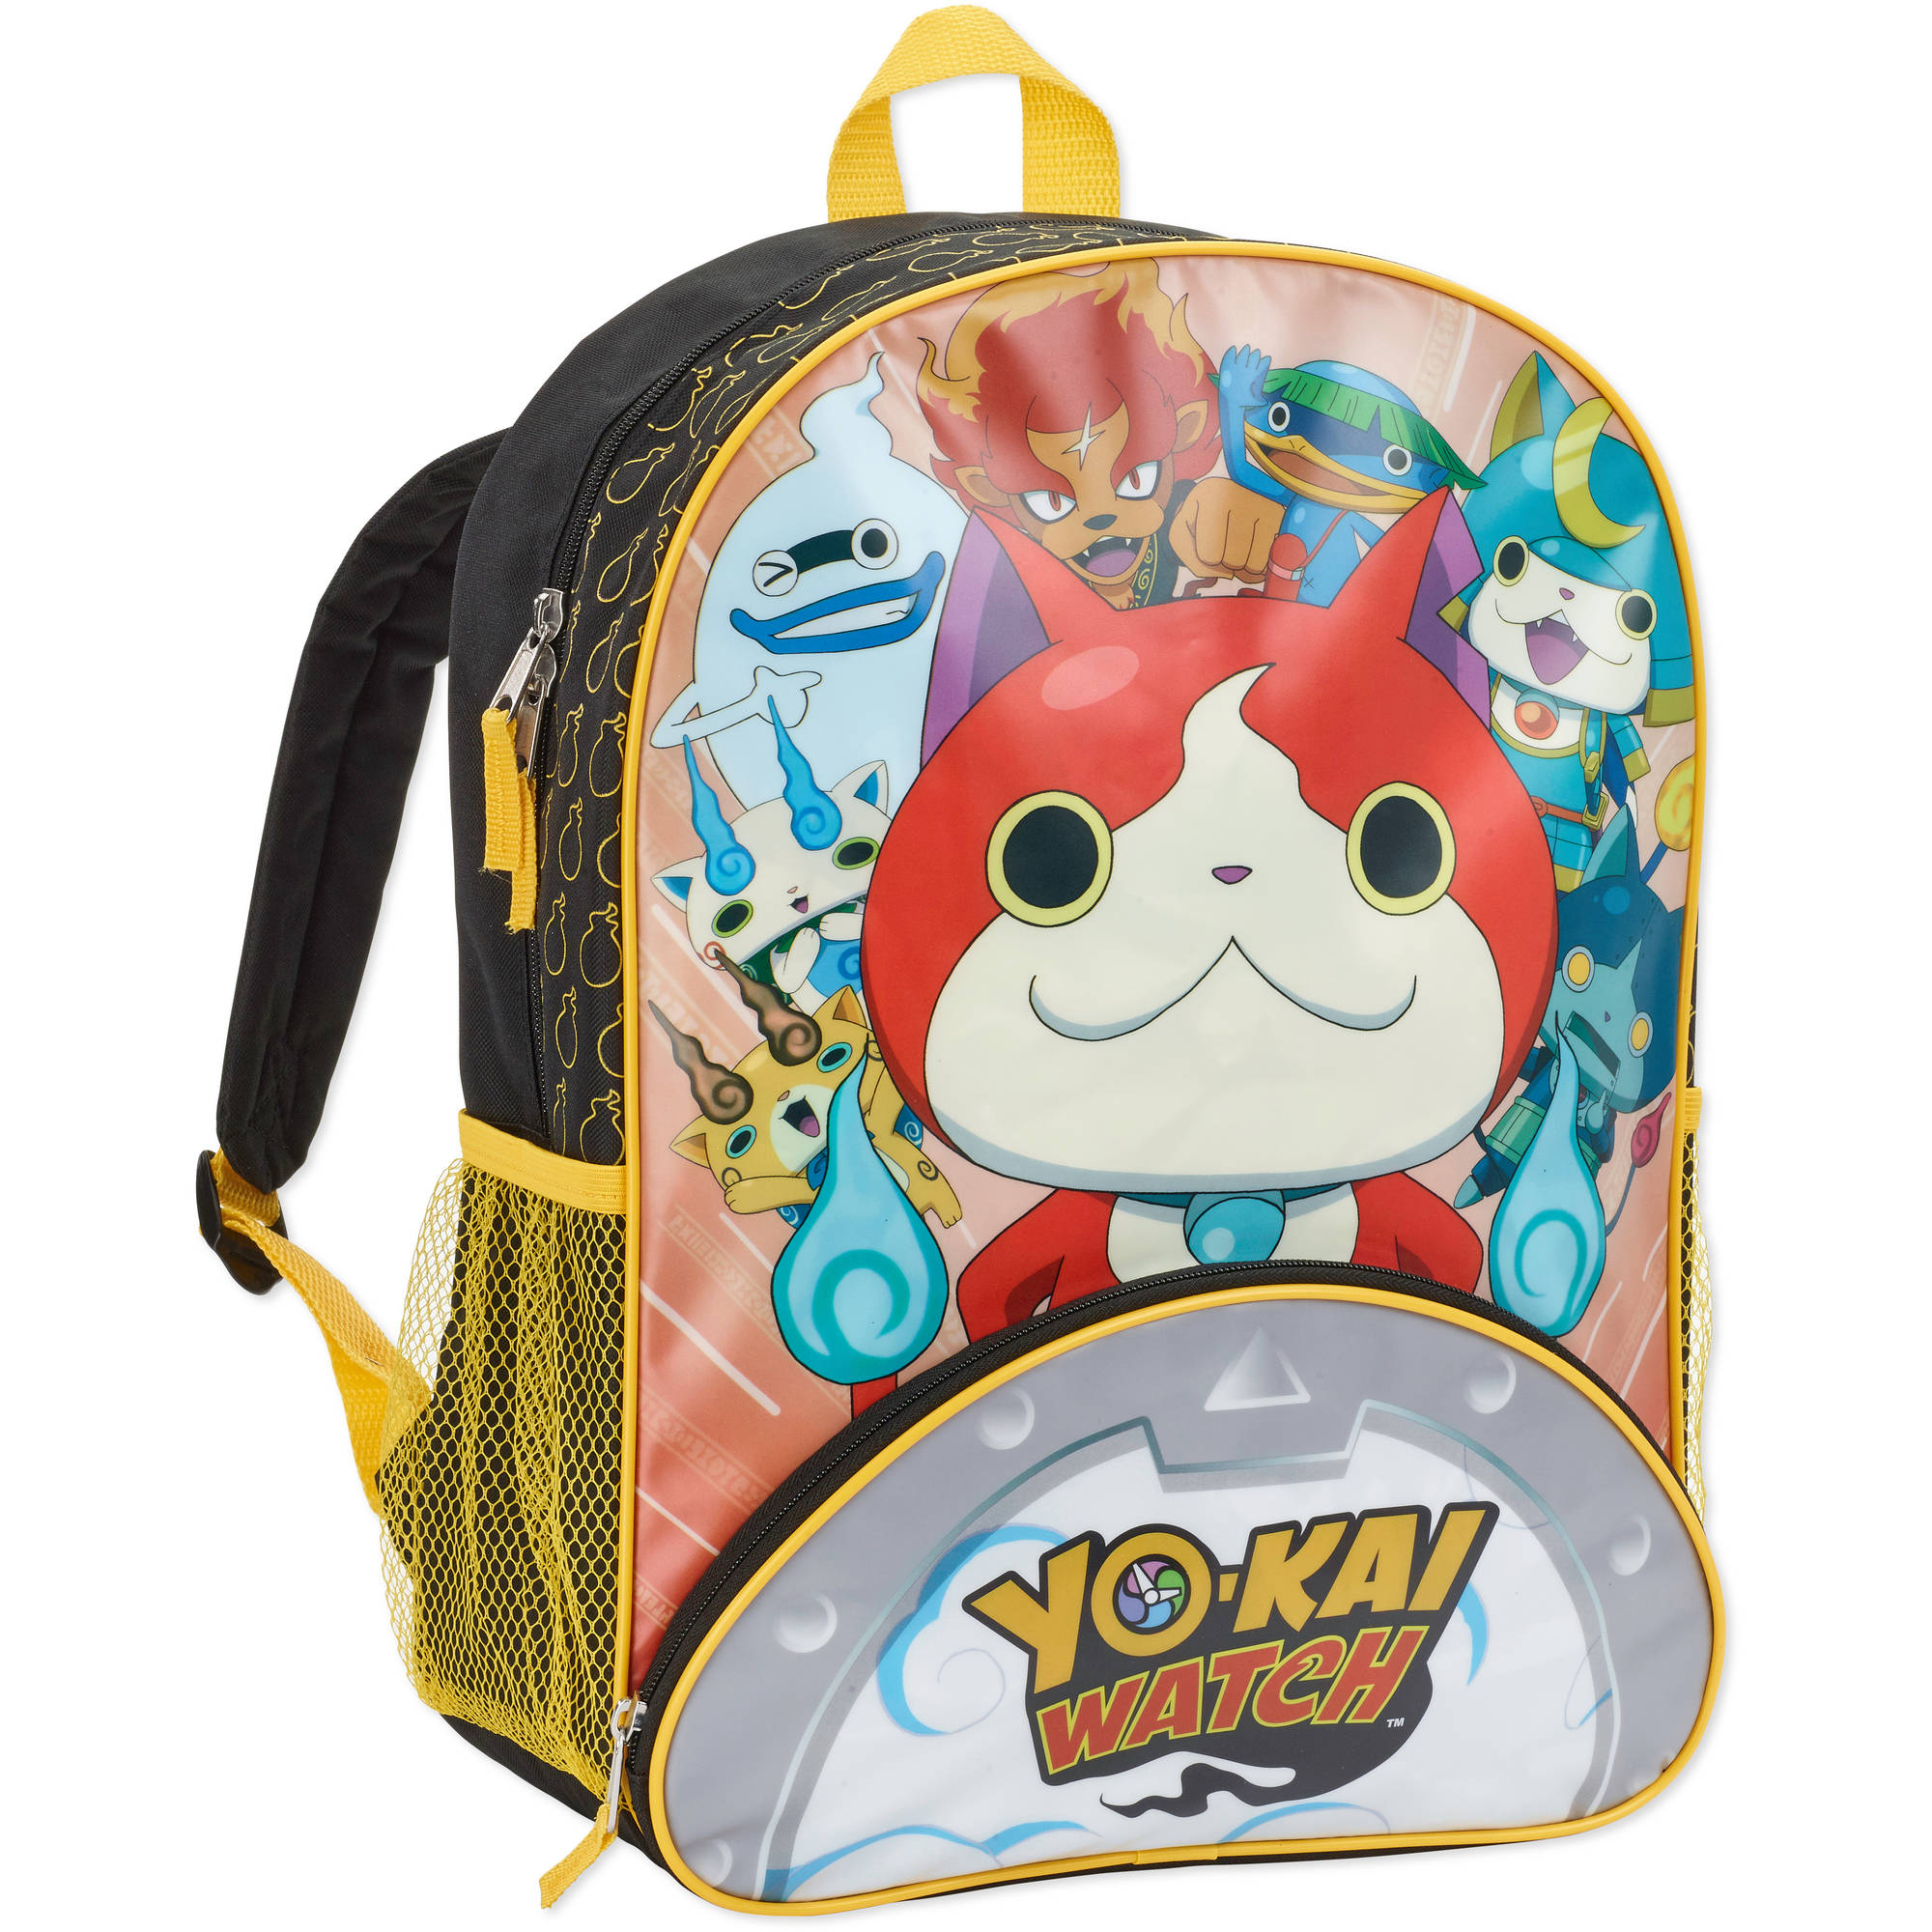 Yo-kai Watch Jibanyan Power Kids' Backpack